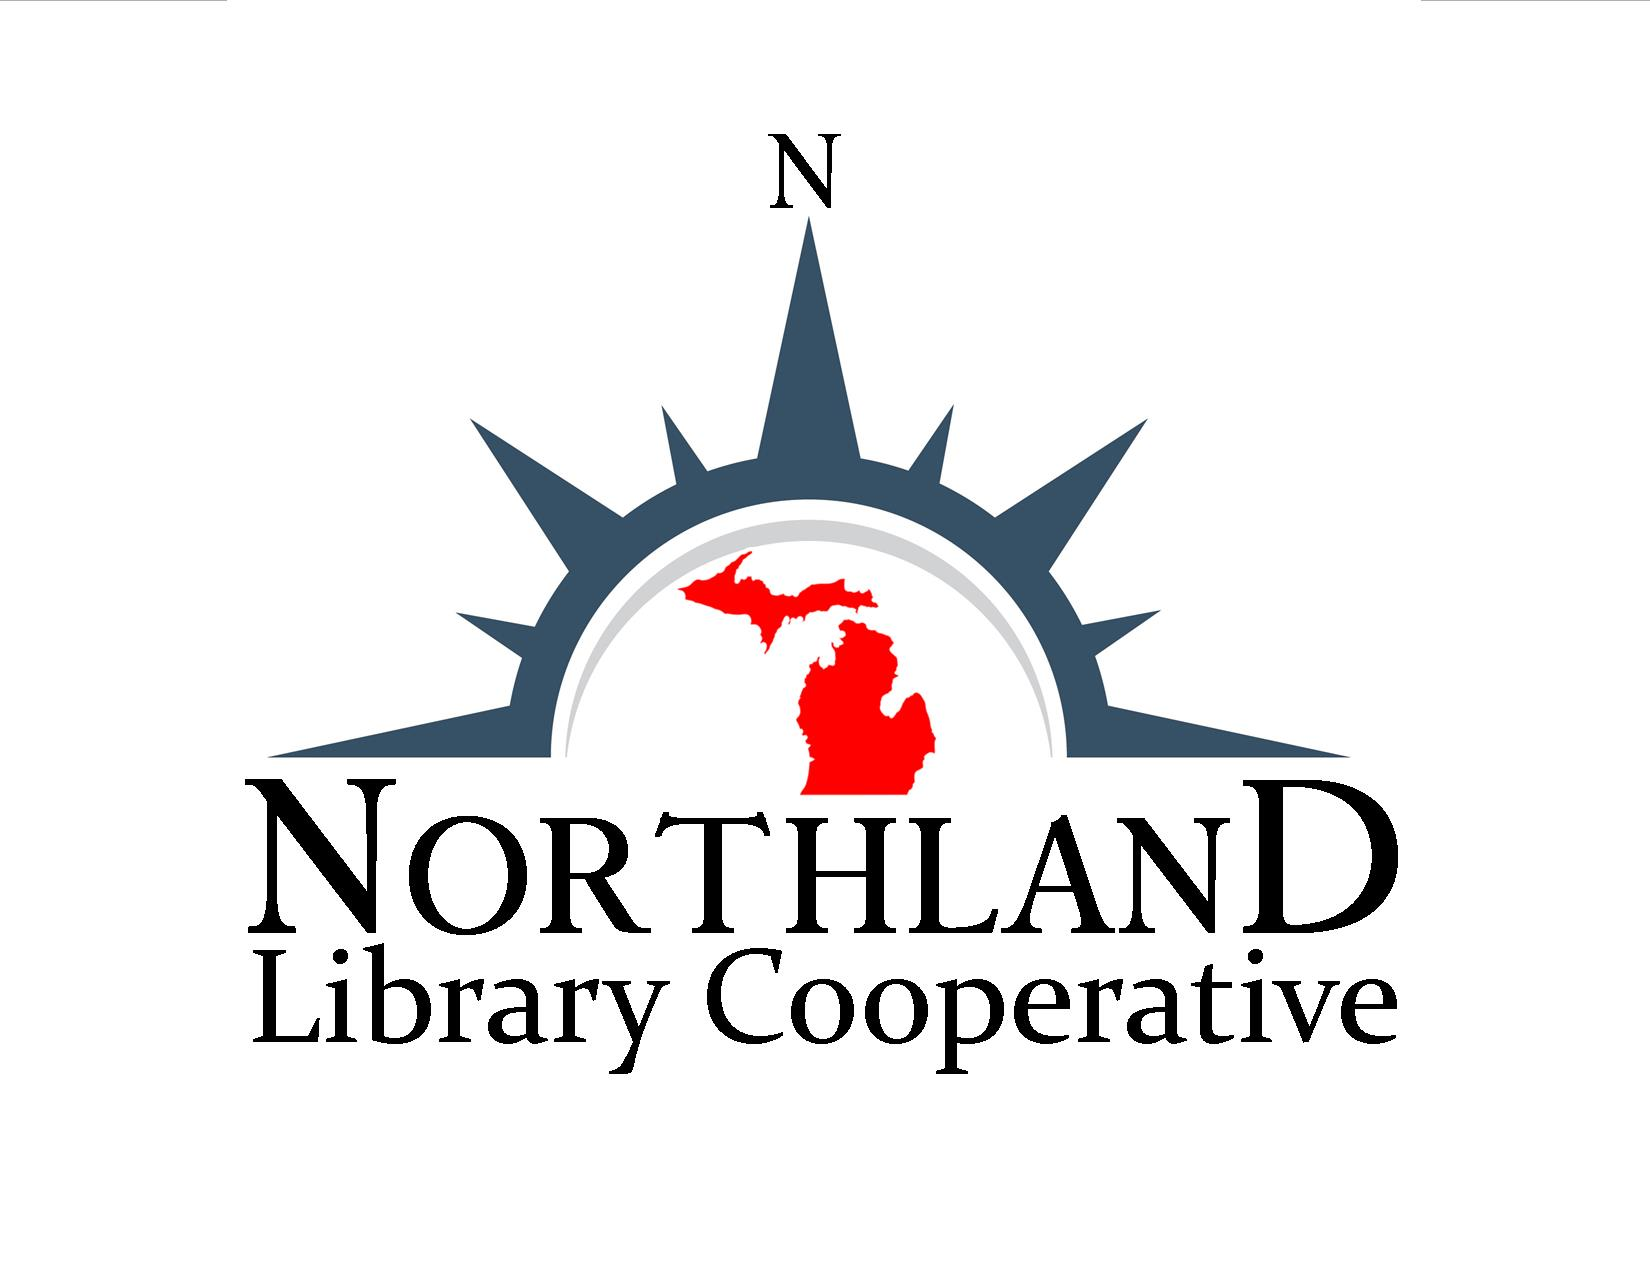 Northland Library Cooperative